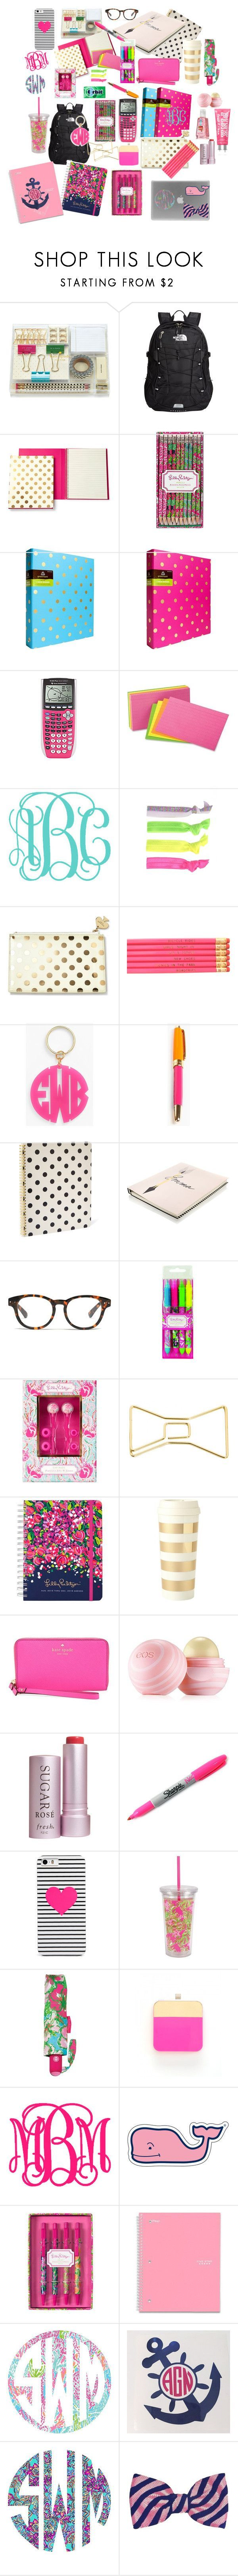 """""""Back to School Supplies Contest"""" by lizguck ❤ liked on Polyvore featuring Amara, The North Face, Kate Spade, Lilly Pulitzer, Glam Bands, Moon and Lola, Madewell, Pink Vanilla, Eos and Fresh"""